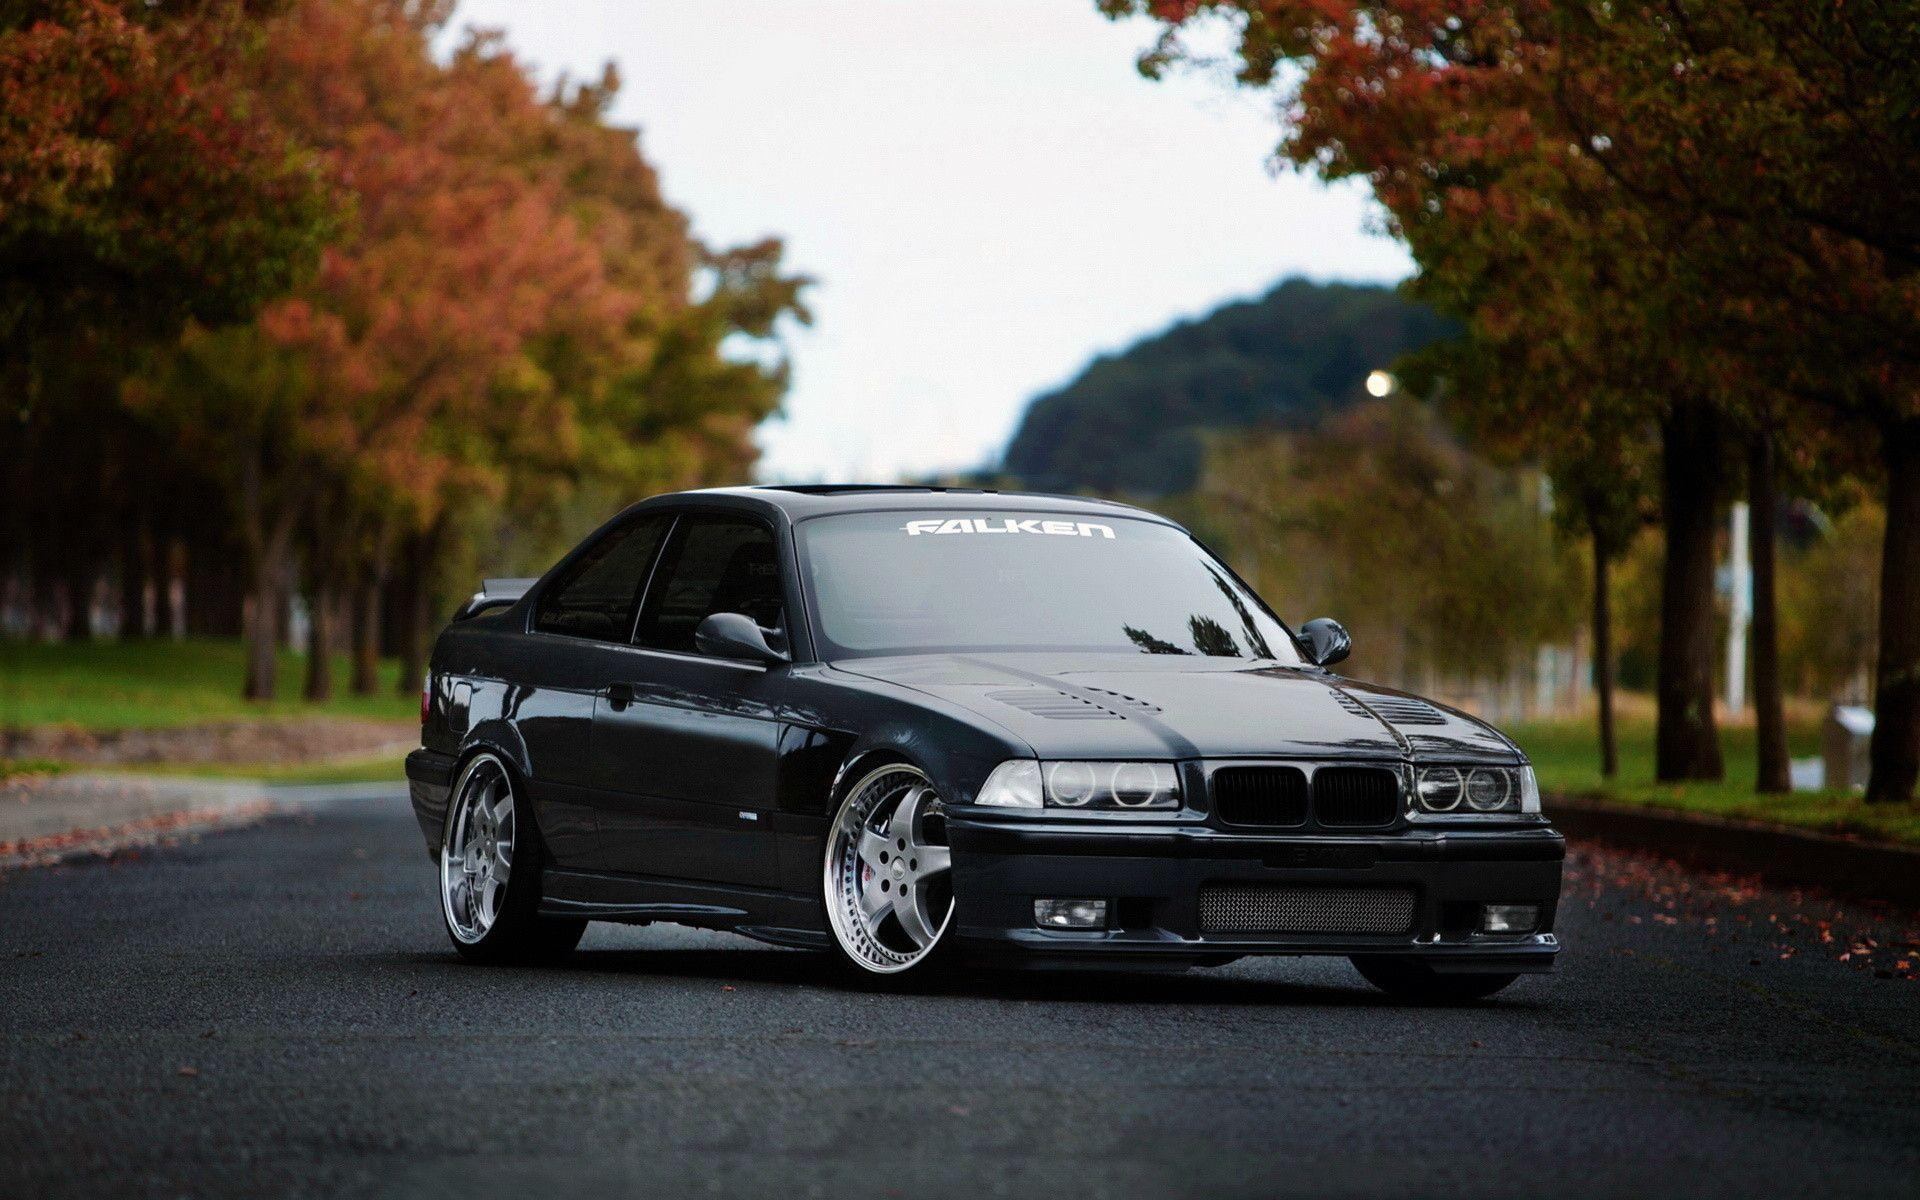 BMW E36 M3 Wallpapers 1920x1200